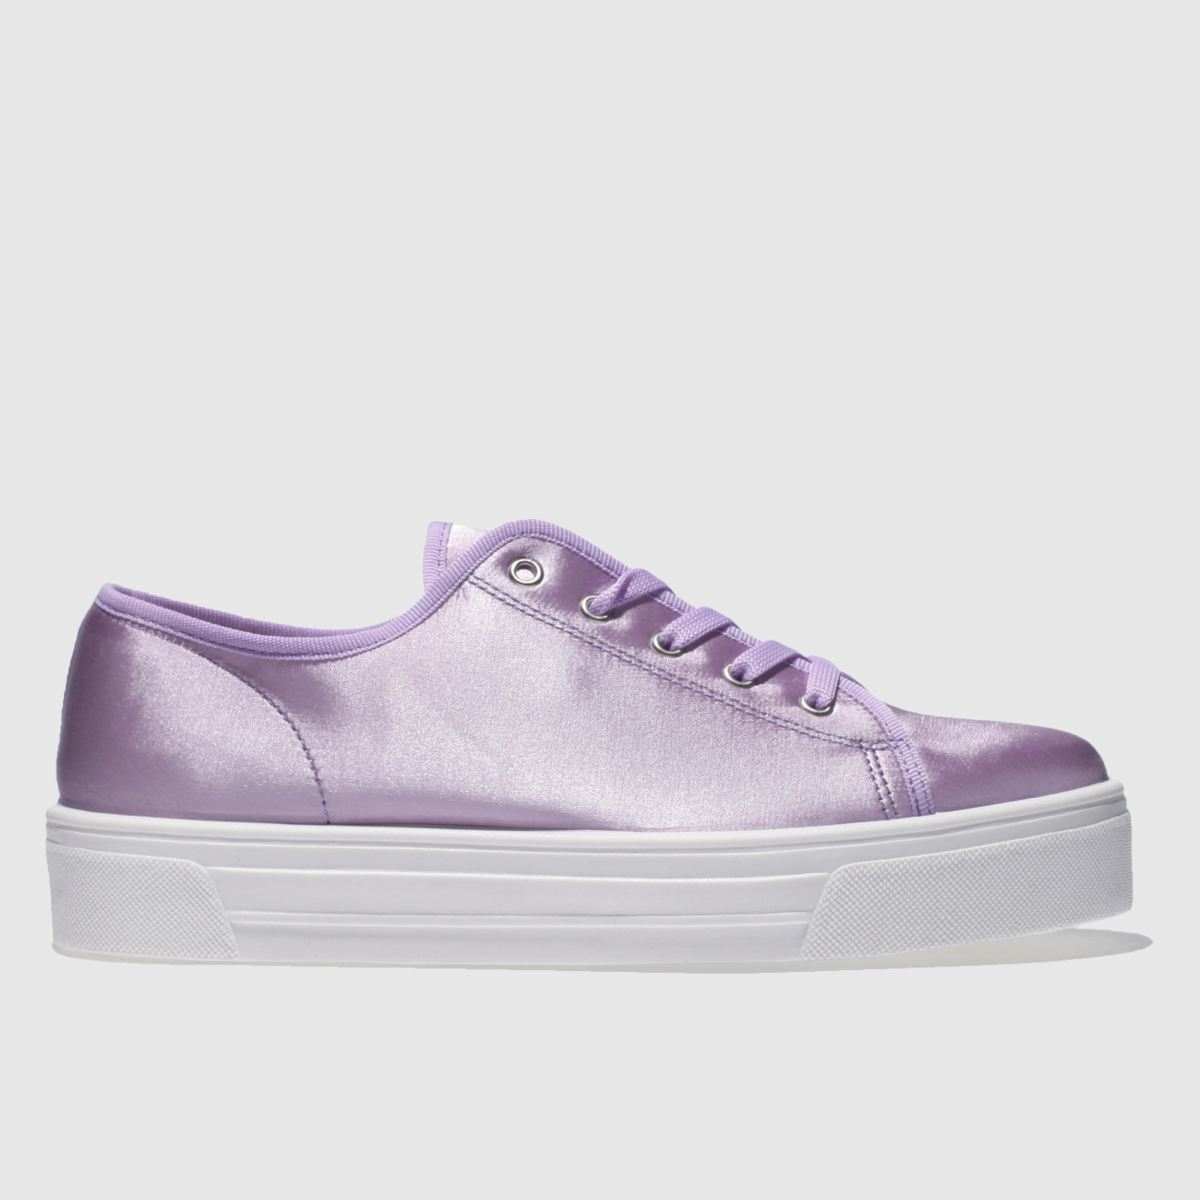 Schuh Lilac Sneaky Trainers